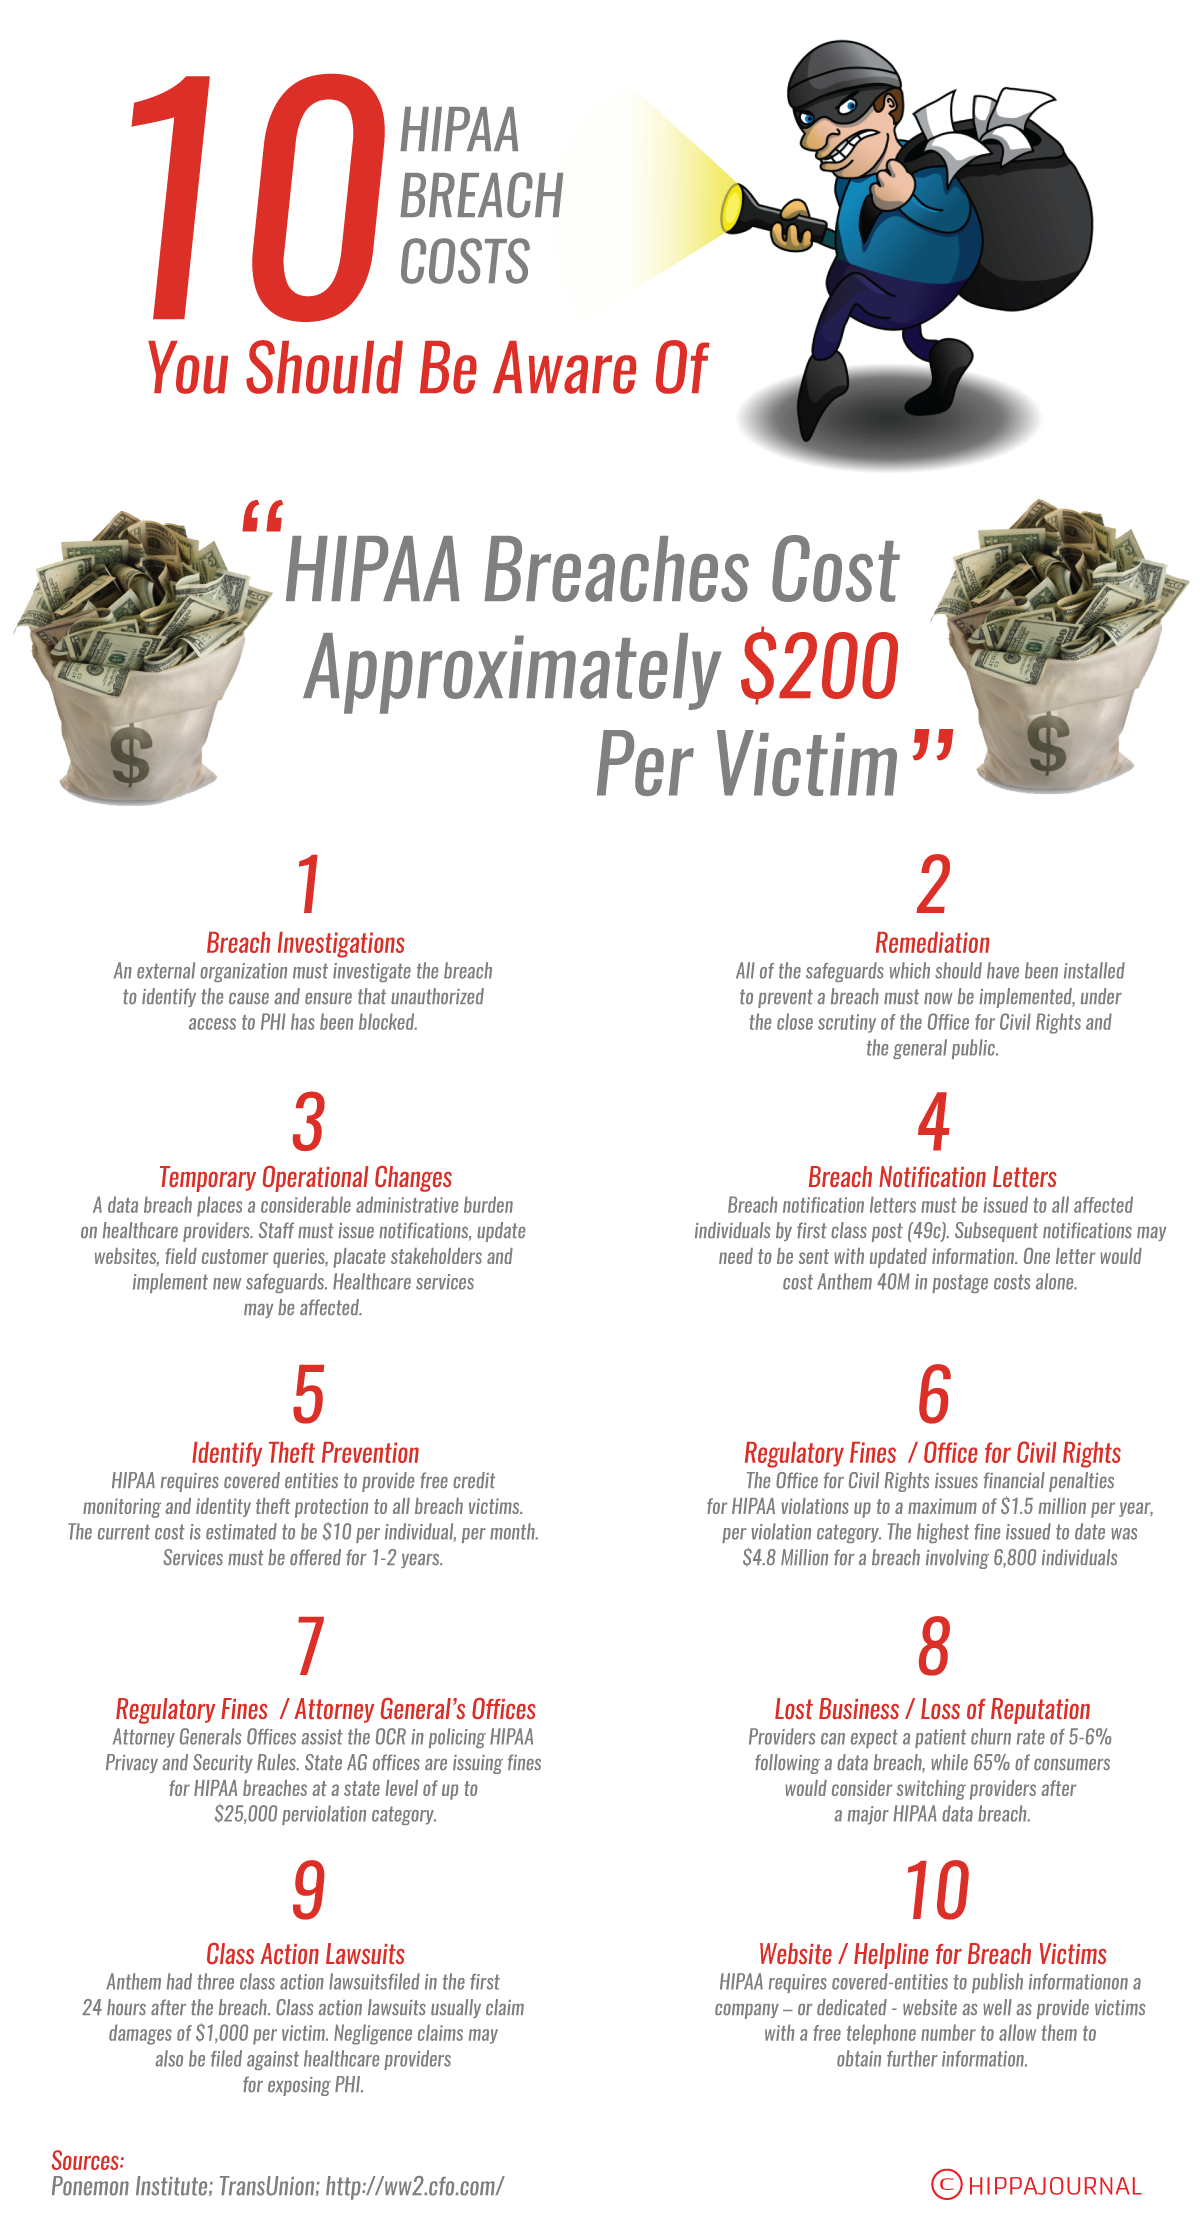 How Should You Respond to an Accidental HIPAA Violation?